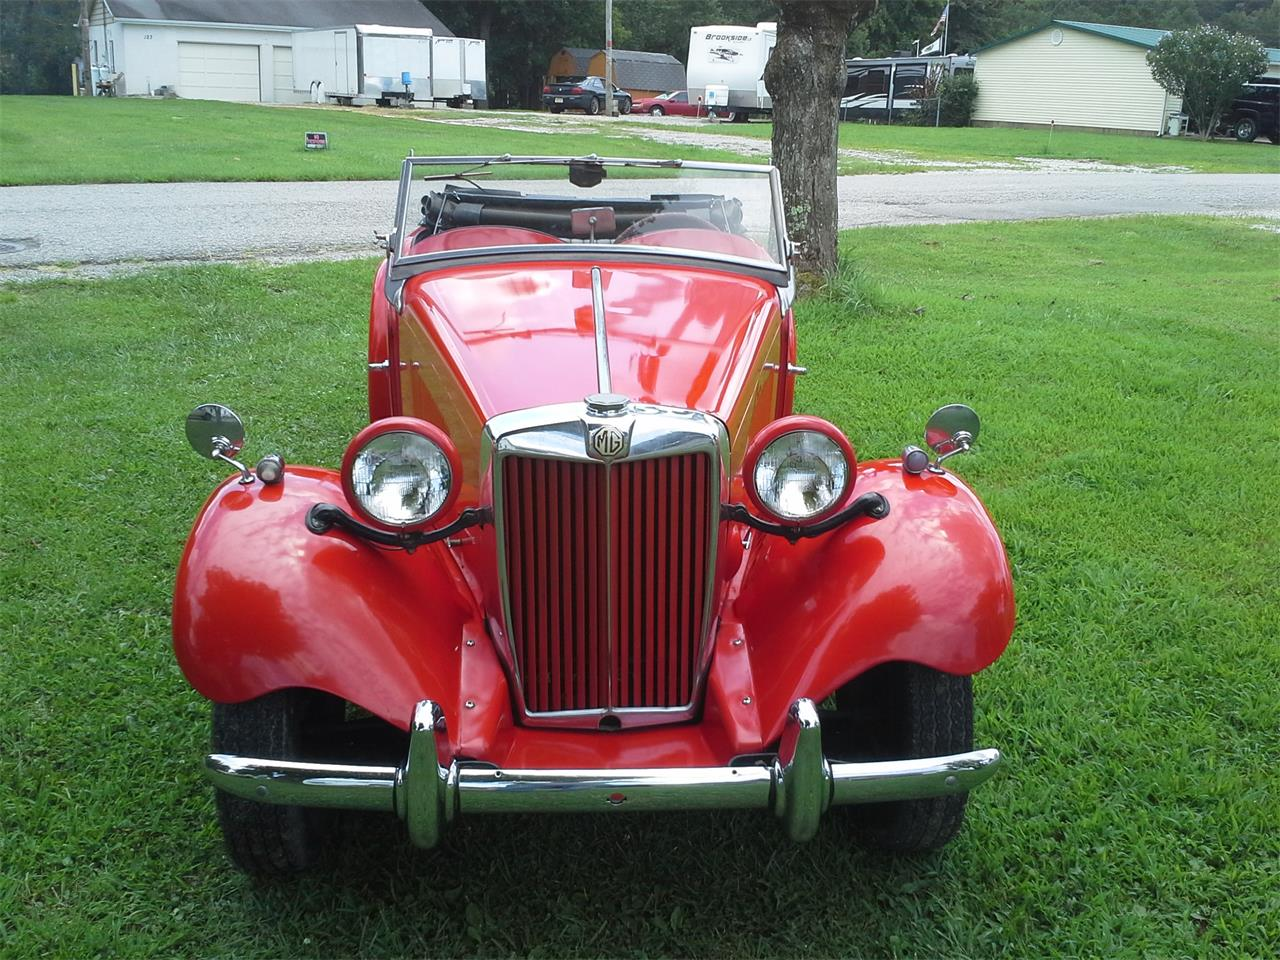 Large Picture of Classic 1954 MG TD located in Hurricane West Virginia - $21,500.00 Offered by a Private Seller - J4BM